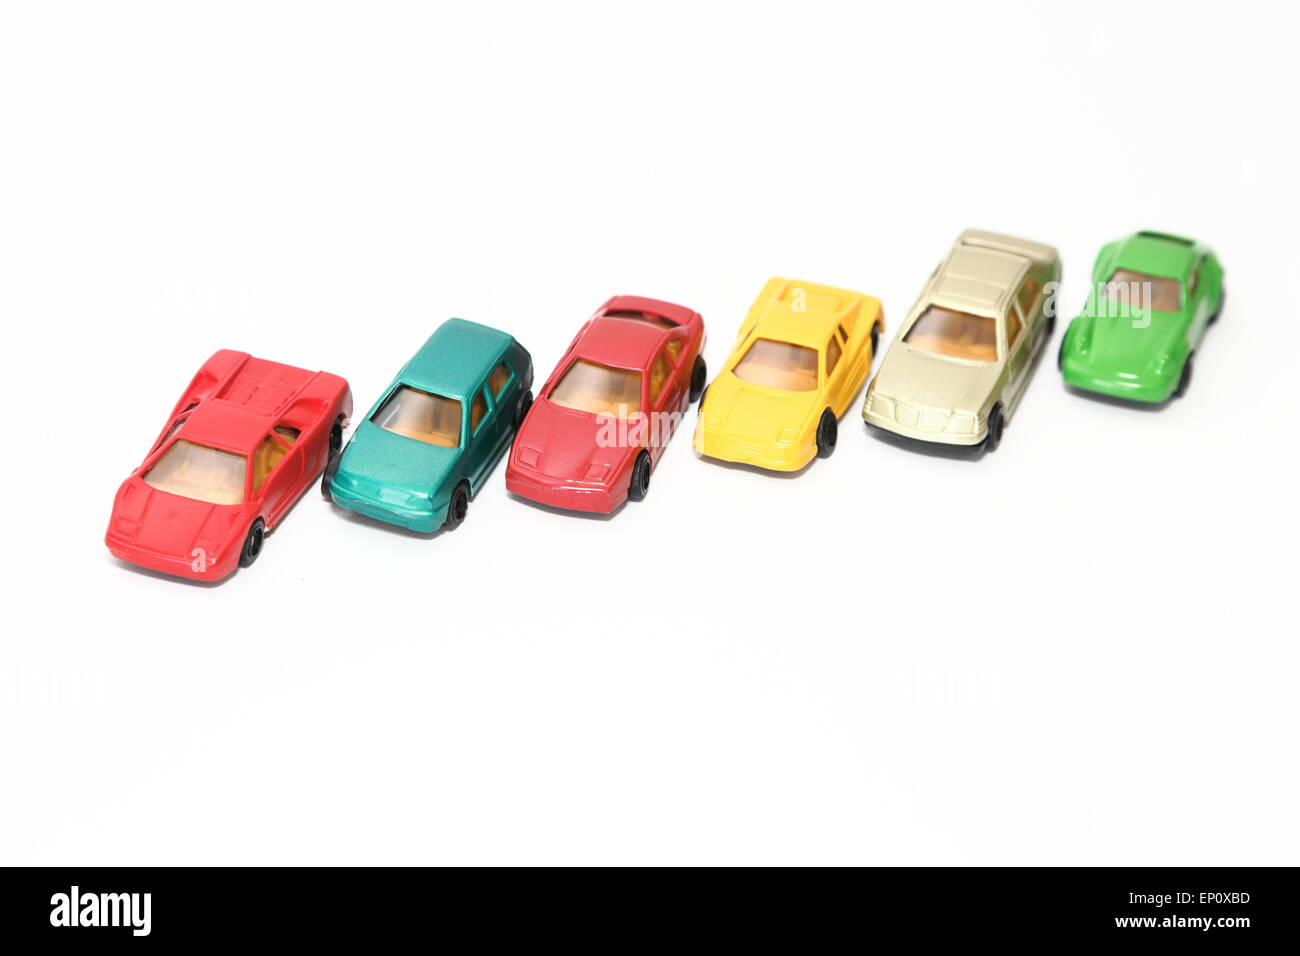 Toy cars - Stock Image